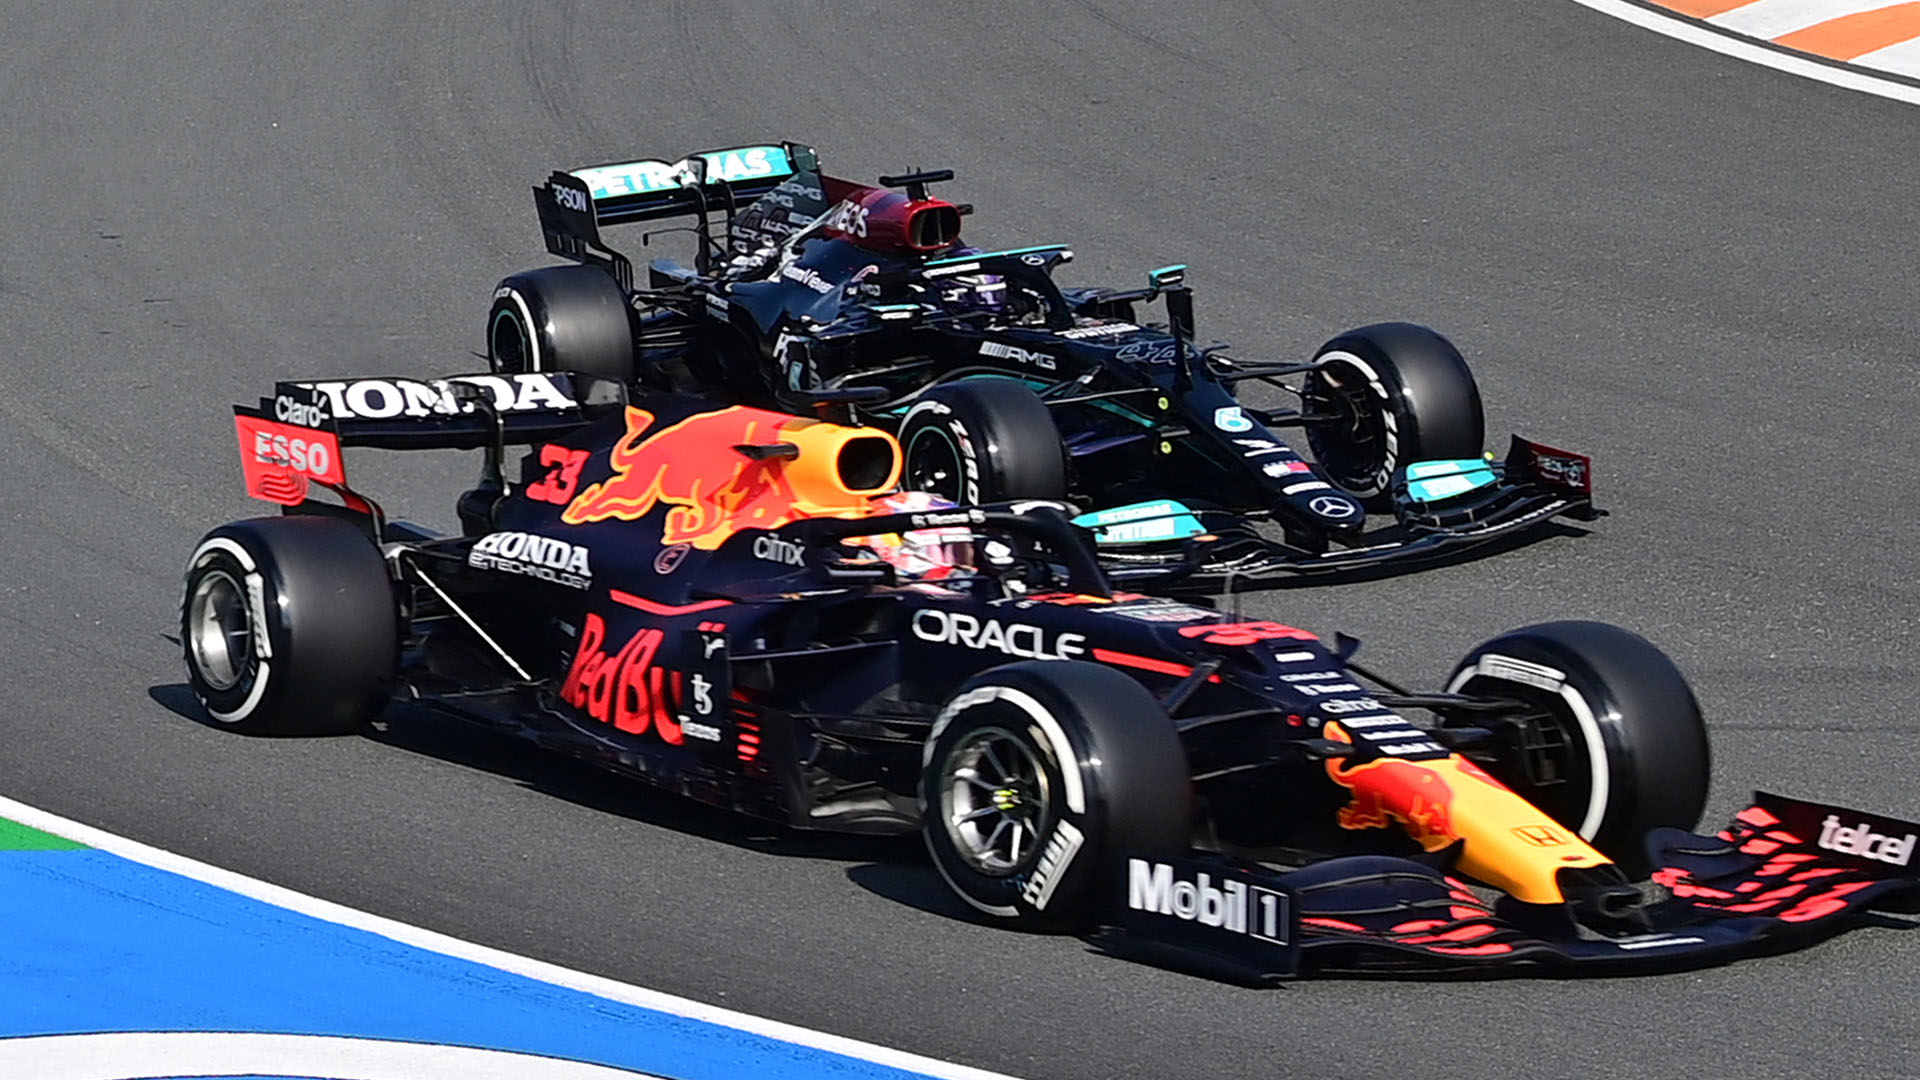 'They can't race with velvet gloves' – Horner and Wolff won't rule out more Hamilton-Verstappen contact as title race hots up